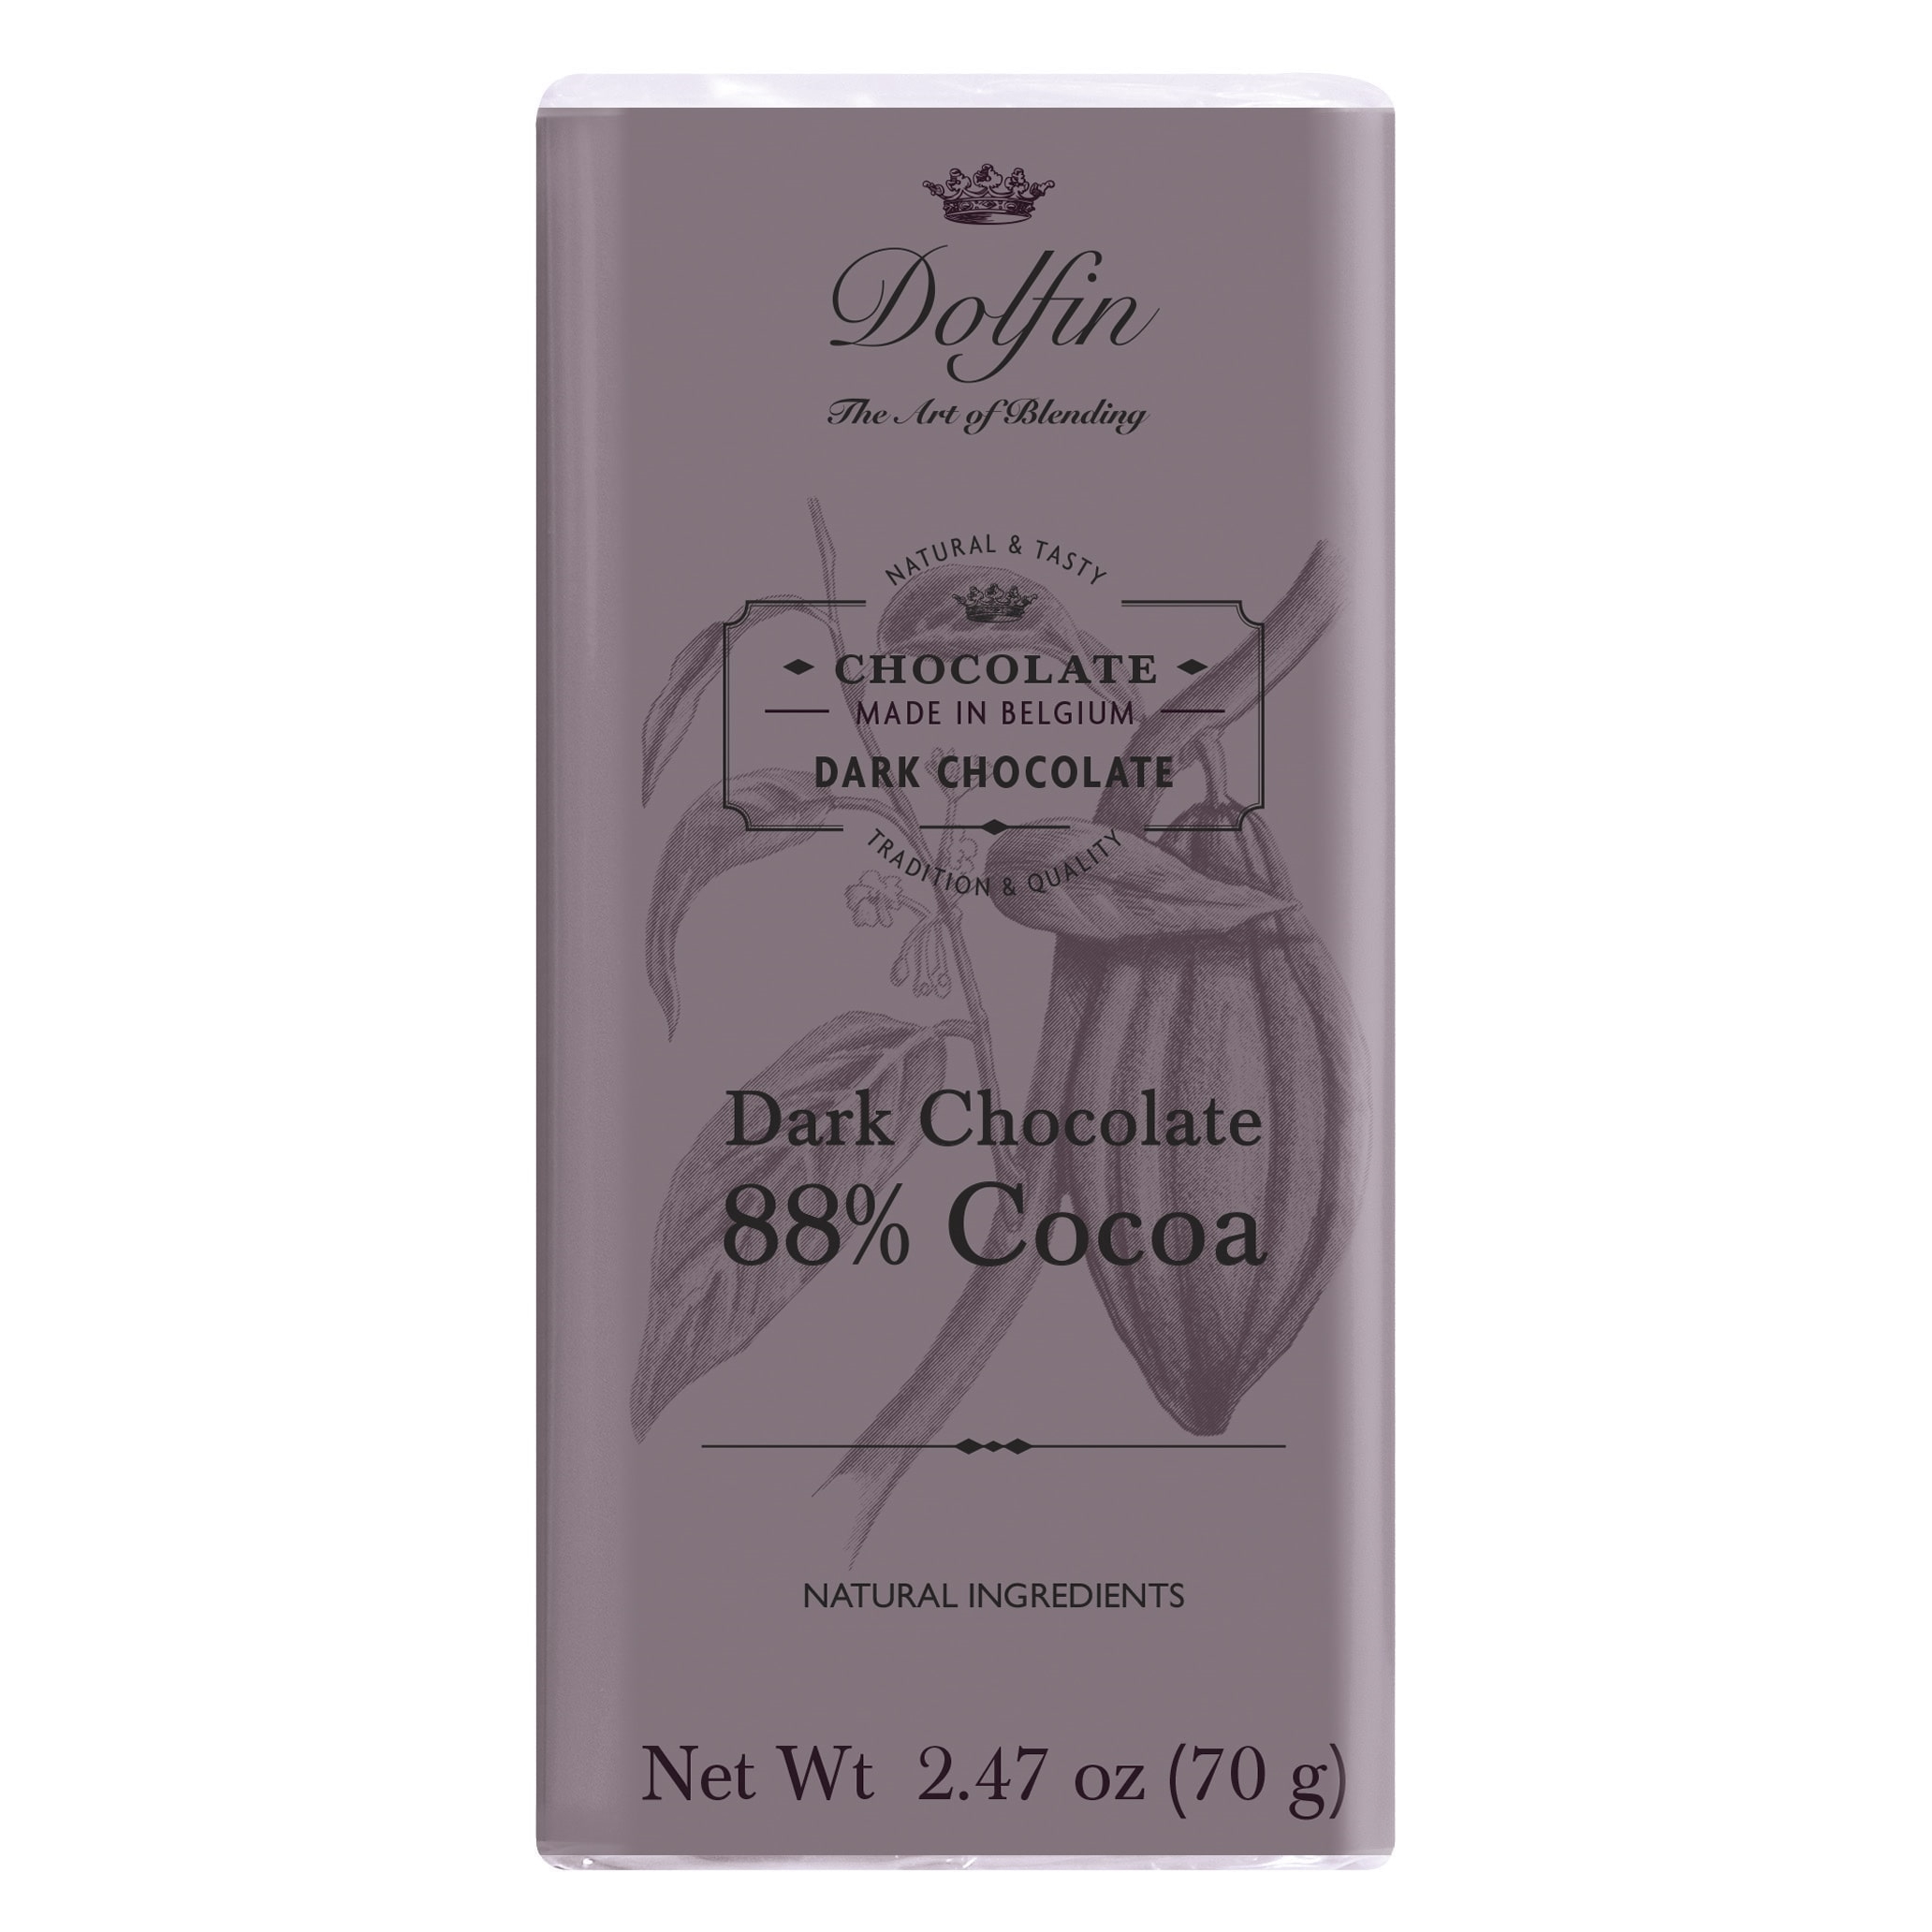 Dolfin 88% Dark Chocolate Bar